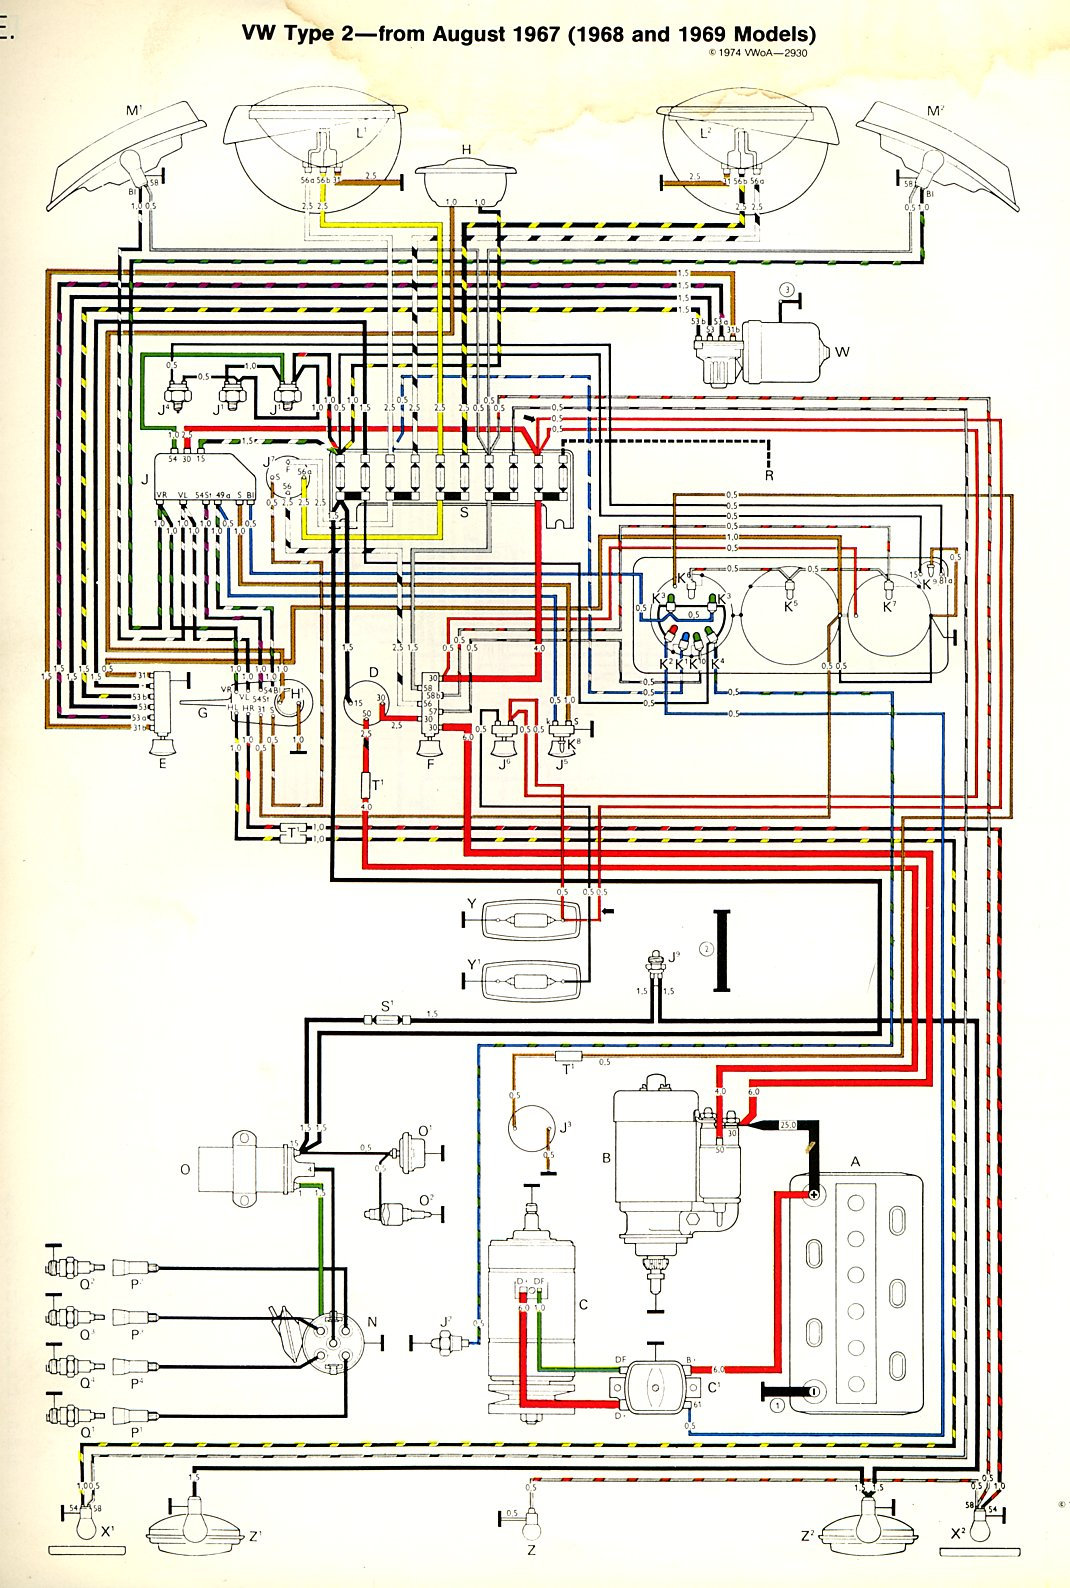 hight resolution of vw bus fuse diagram wiring diagram de1971 vw bus wiring diagram wiring diagrams 70 vw beetle